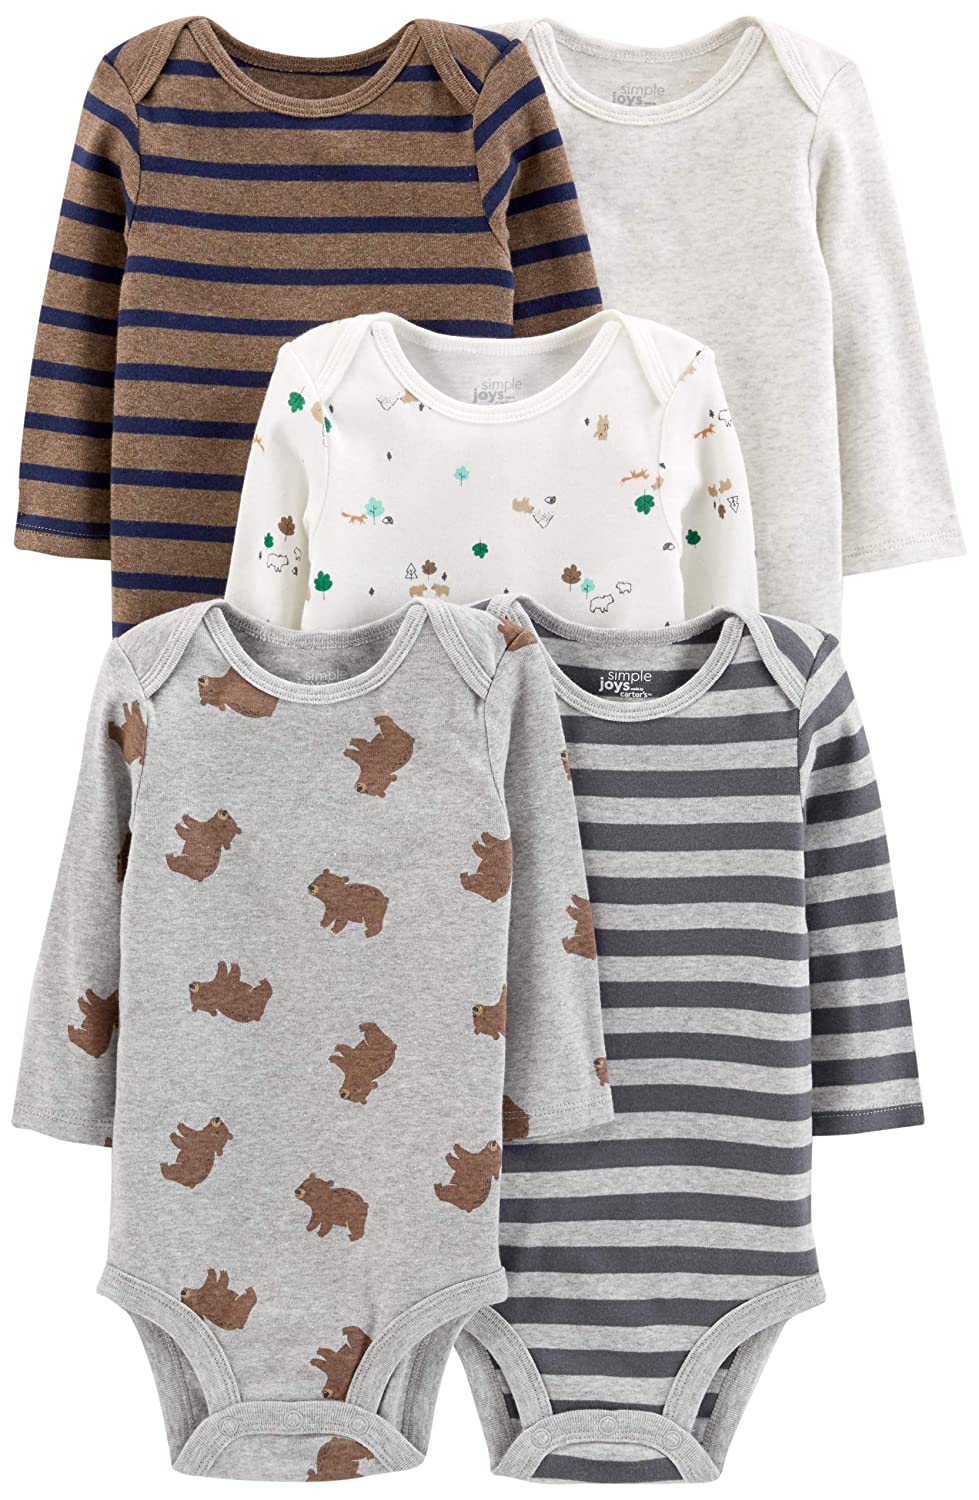 Bears//Animals Green//Stripes Simple Joys by Carters Boys 5-Pack Long-Sleeve Bodysuit 12 Months